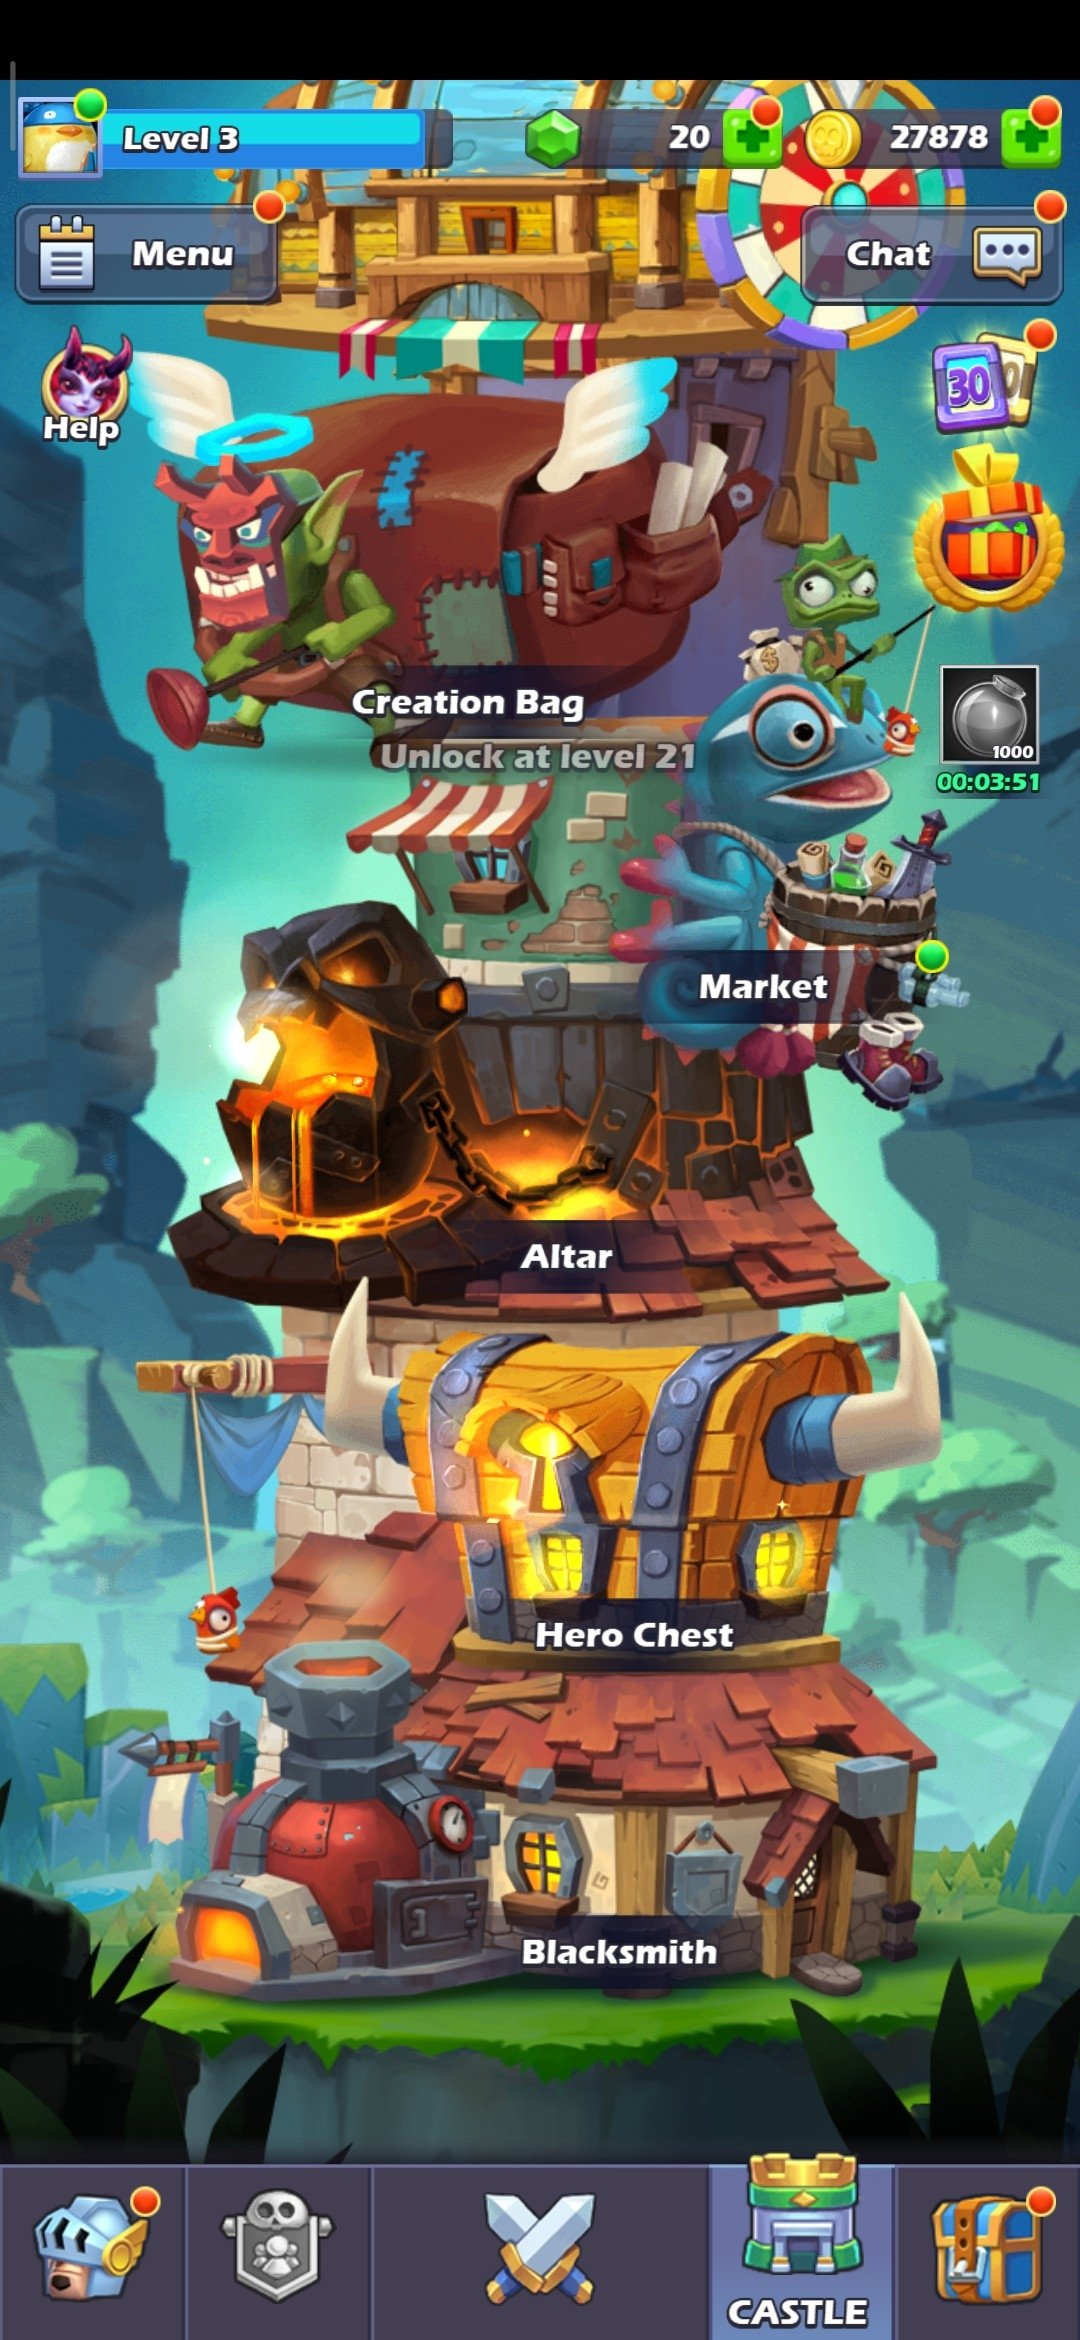 Free Download Taptap Heroes 1.0.0031 for Android